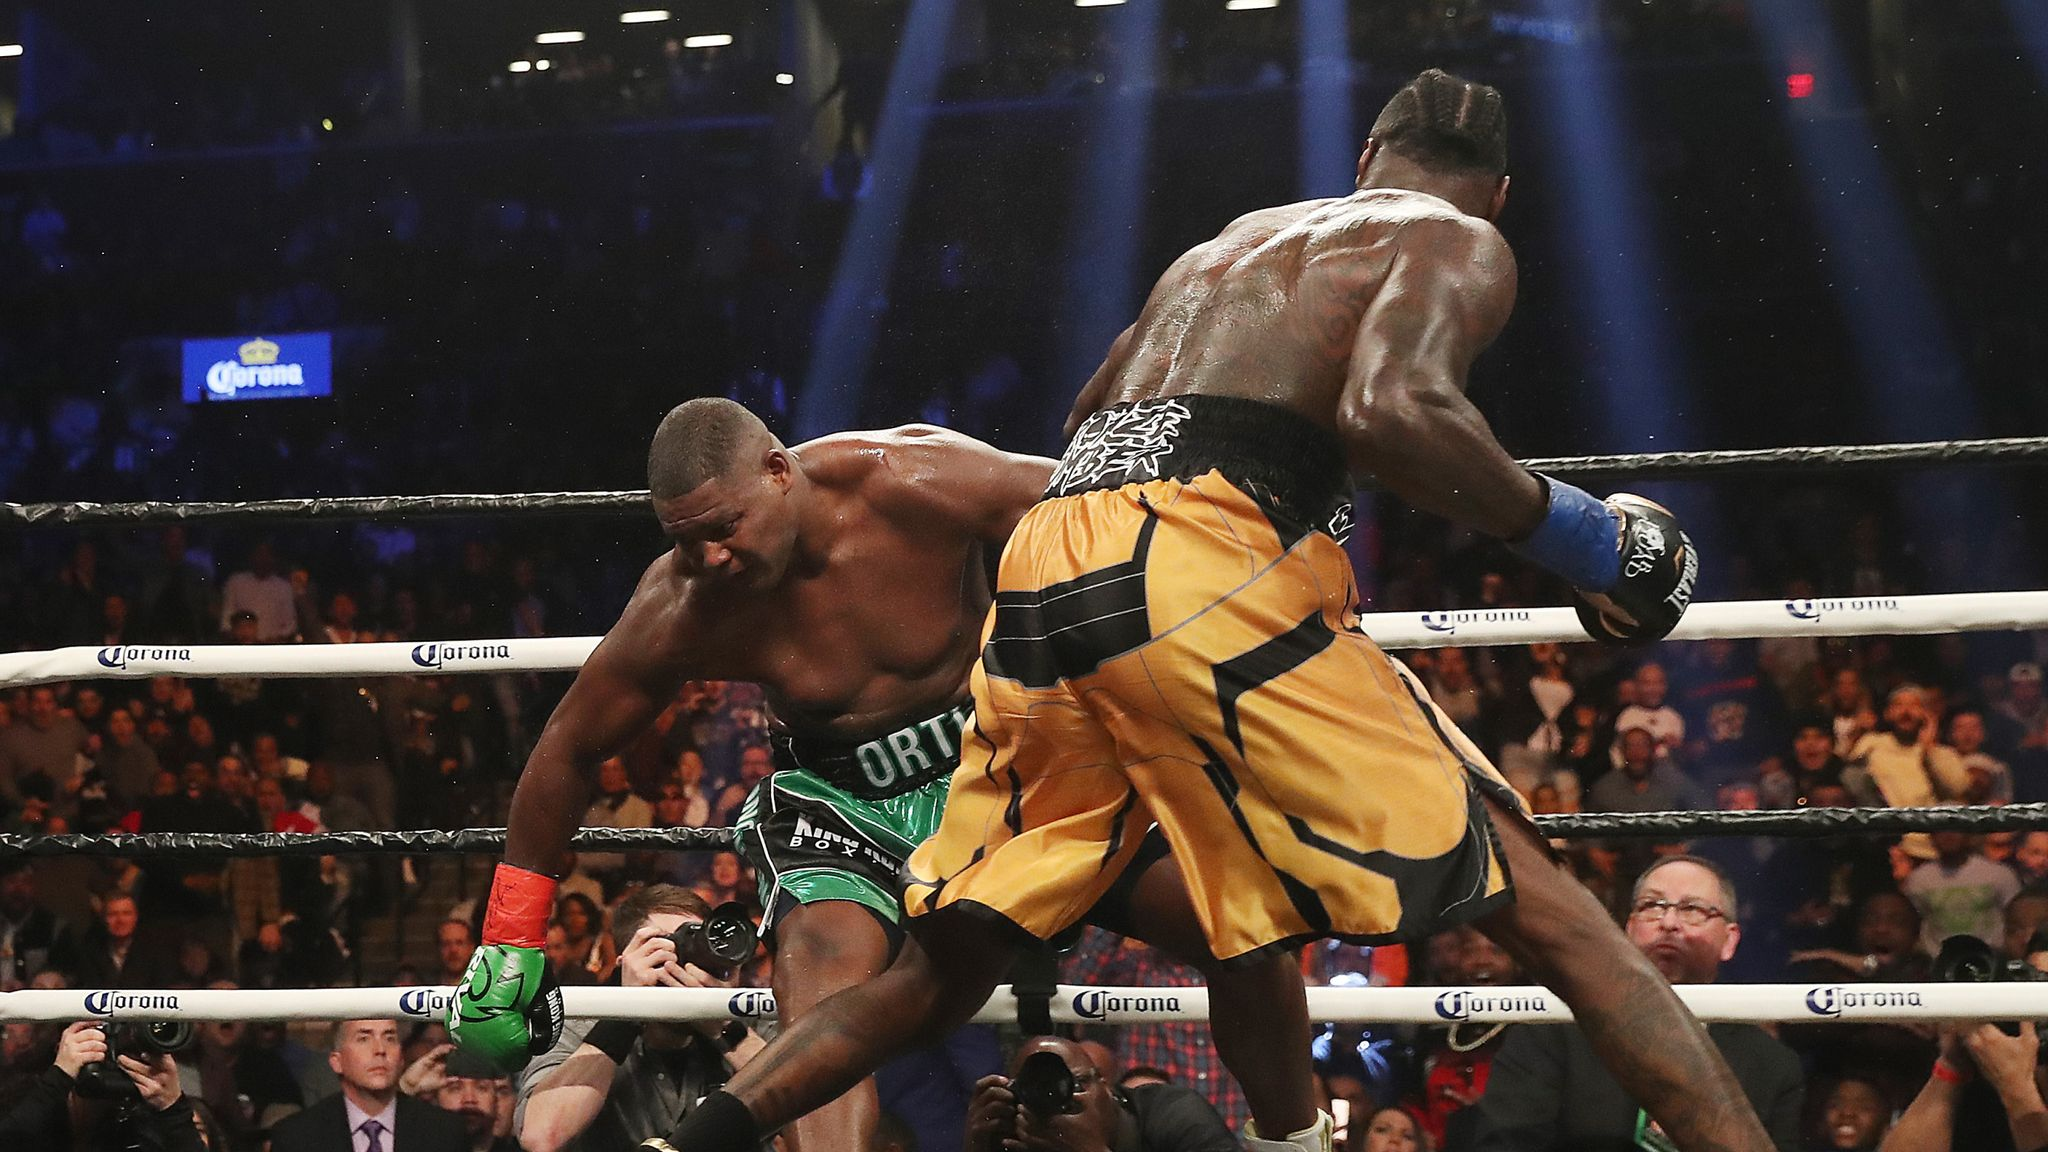 Deontay Wilder has 'God-given' punch power - but does he